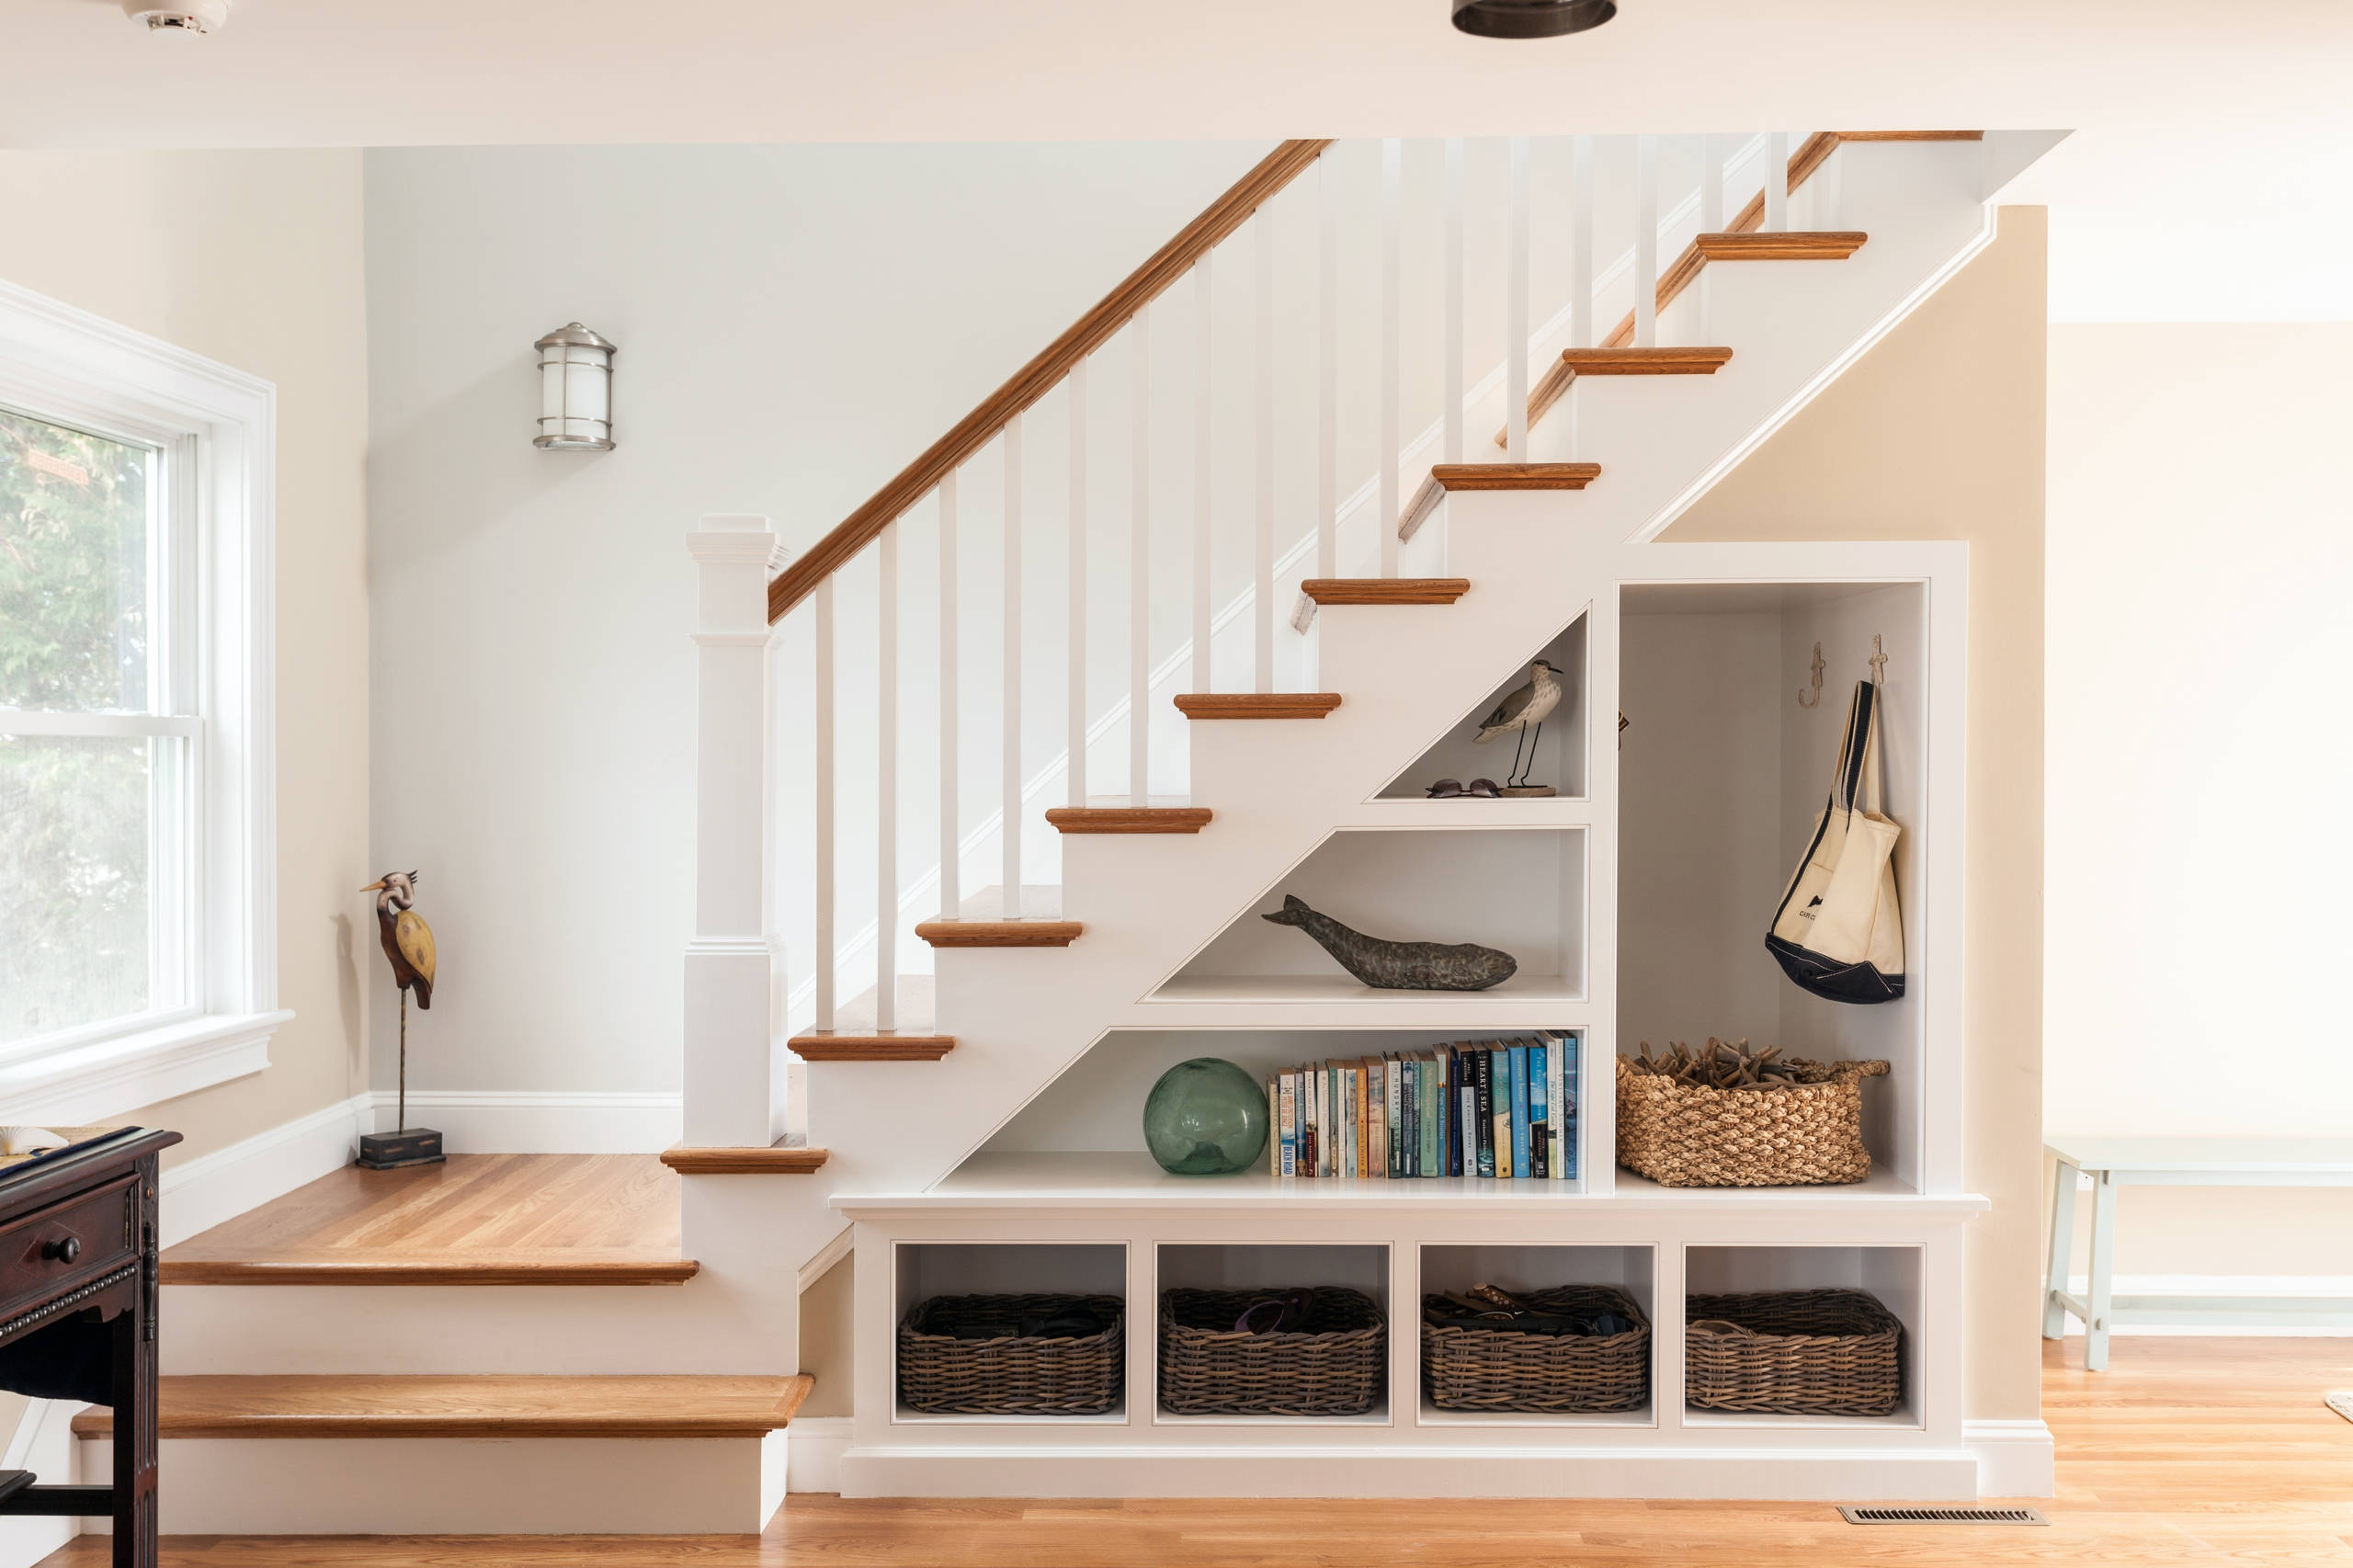 75 Beautiful Staircase Pictures Ideas September 2020 Houzz | Designer Stairs For Houses | Cool | Contemporary | Fancy | Residential | Interior